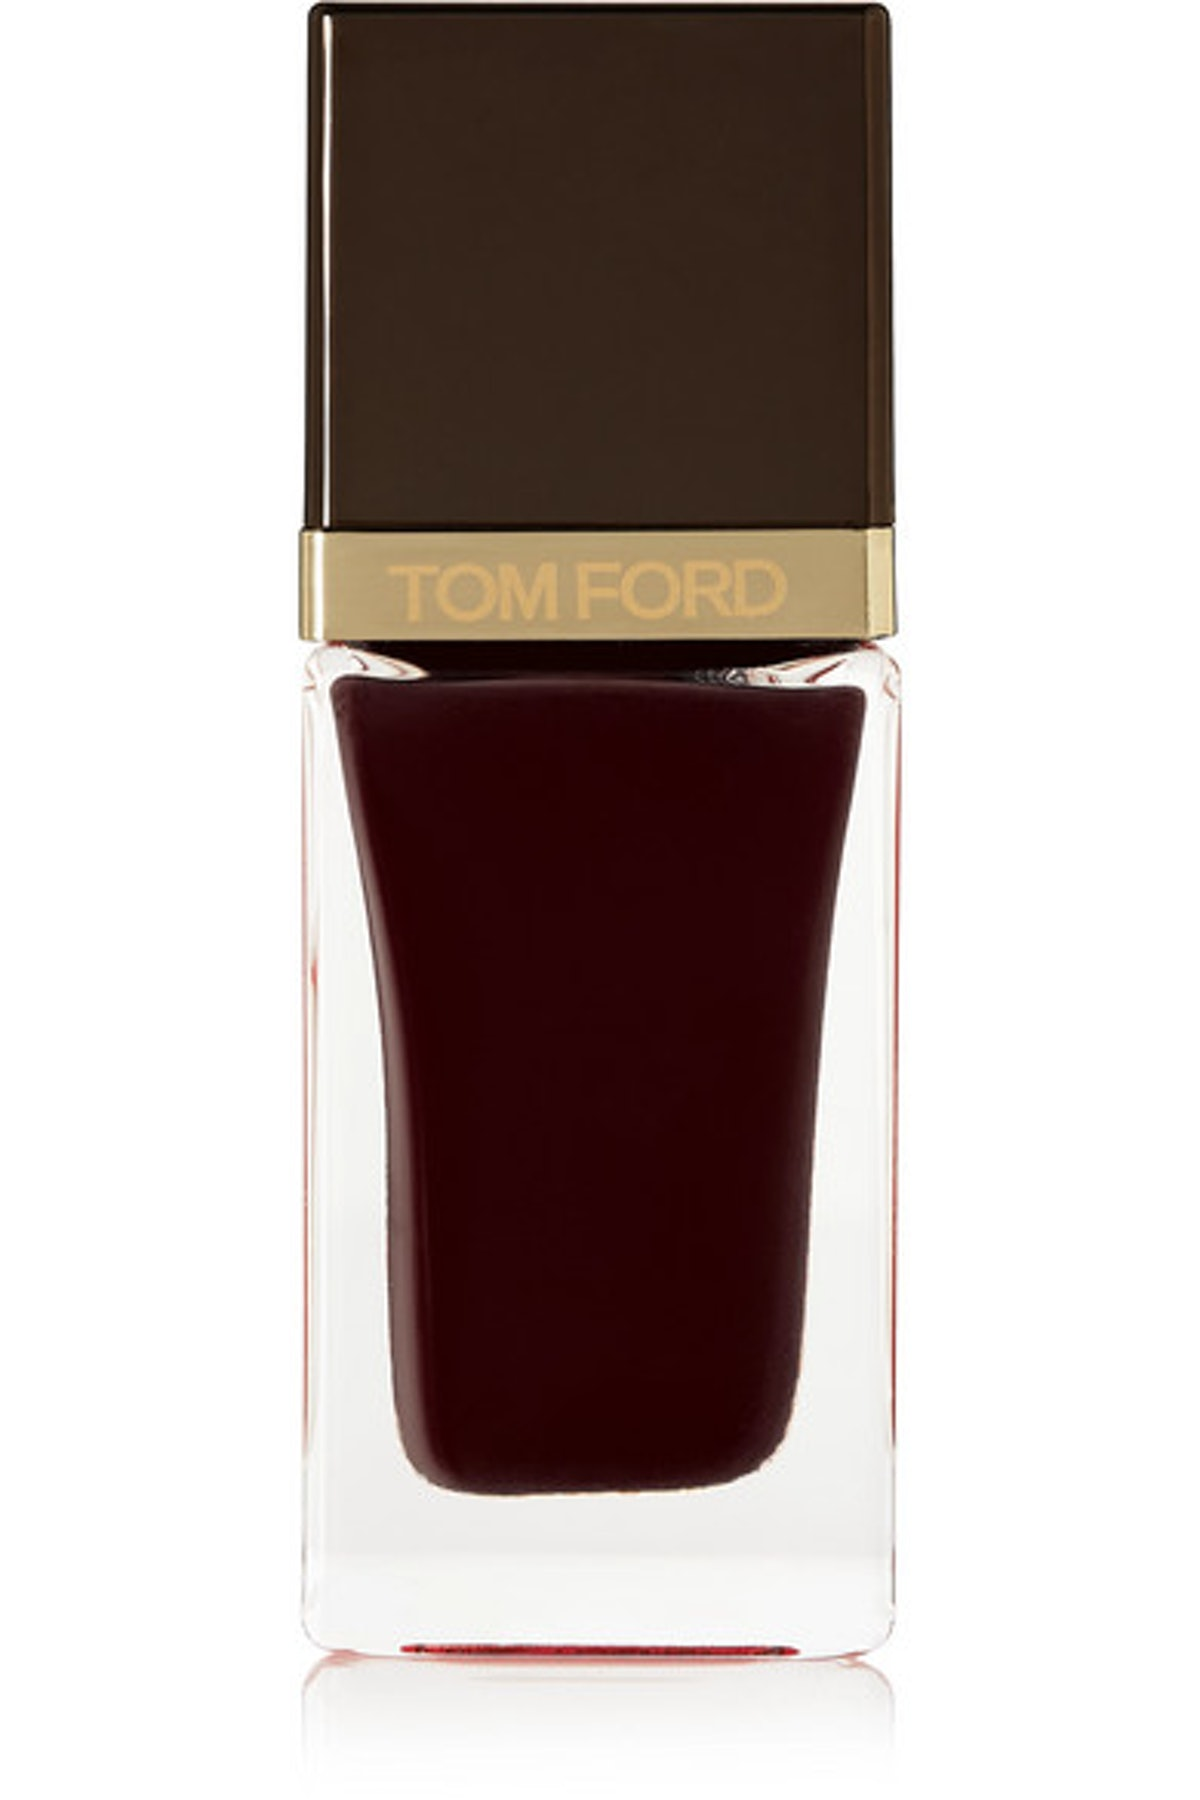 Nail Lacquer in Black Cherry